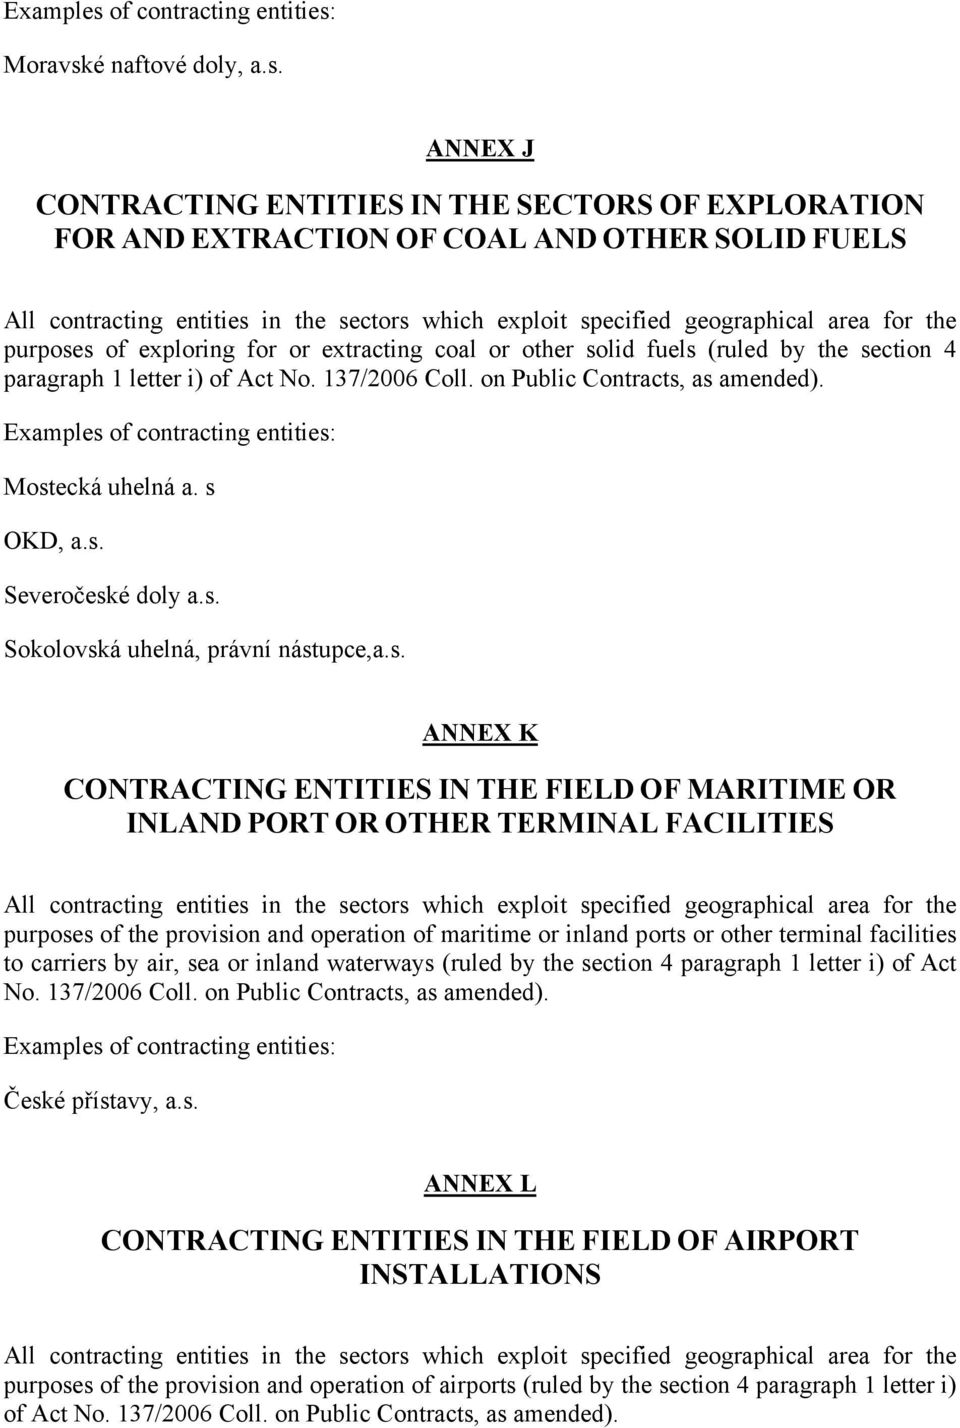 ANNEX J CONTRACTING ENTITIES IN THE SECTORS OF EXPLORATION FOR AND EXTRACTION OF COAL AND OTHER SOLID FUELS All contracting entities in the sectors which exploit specified geographical area for the